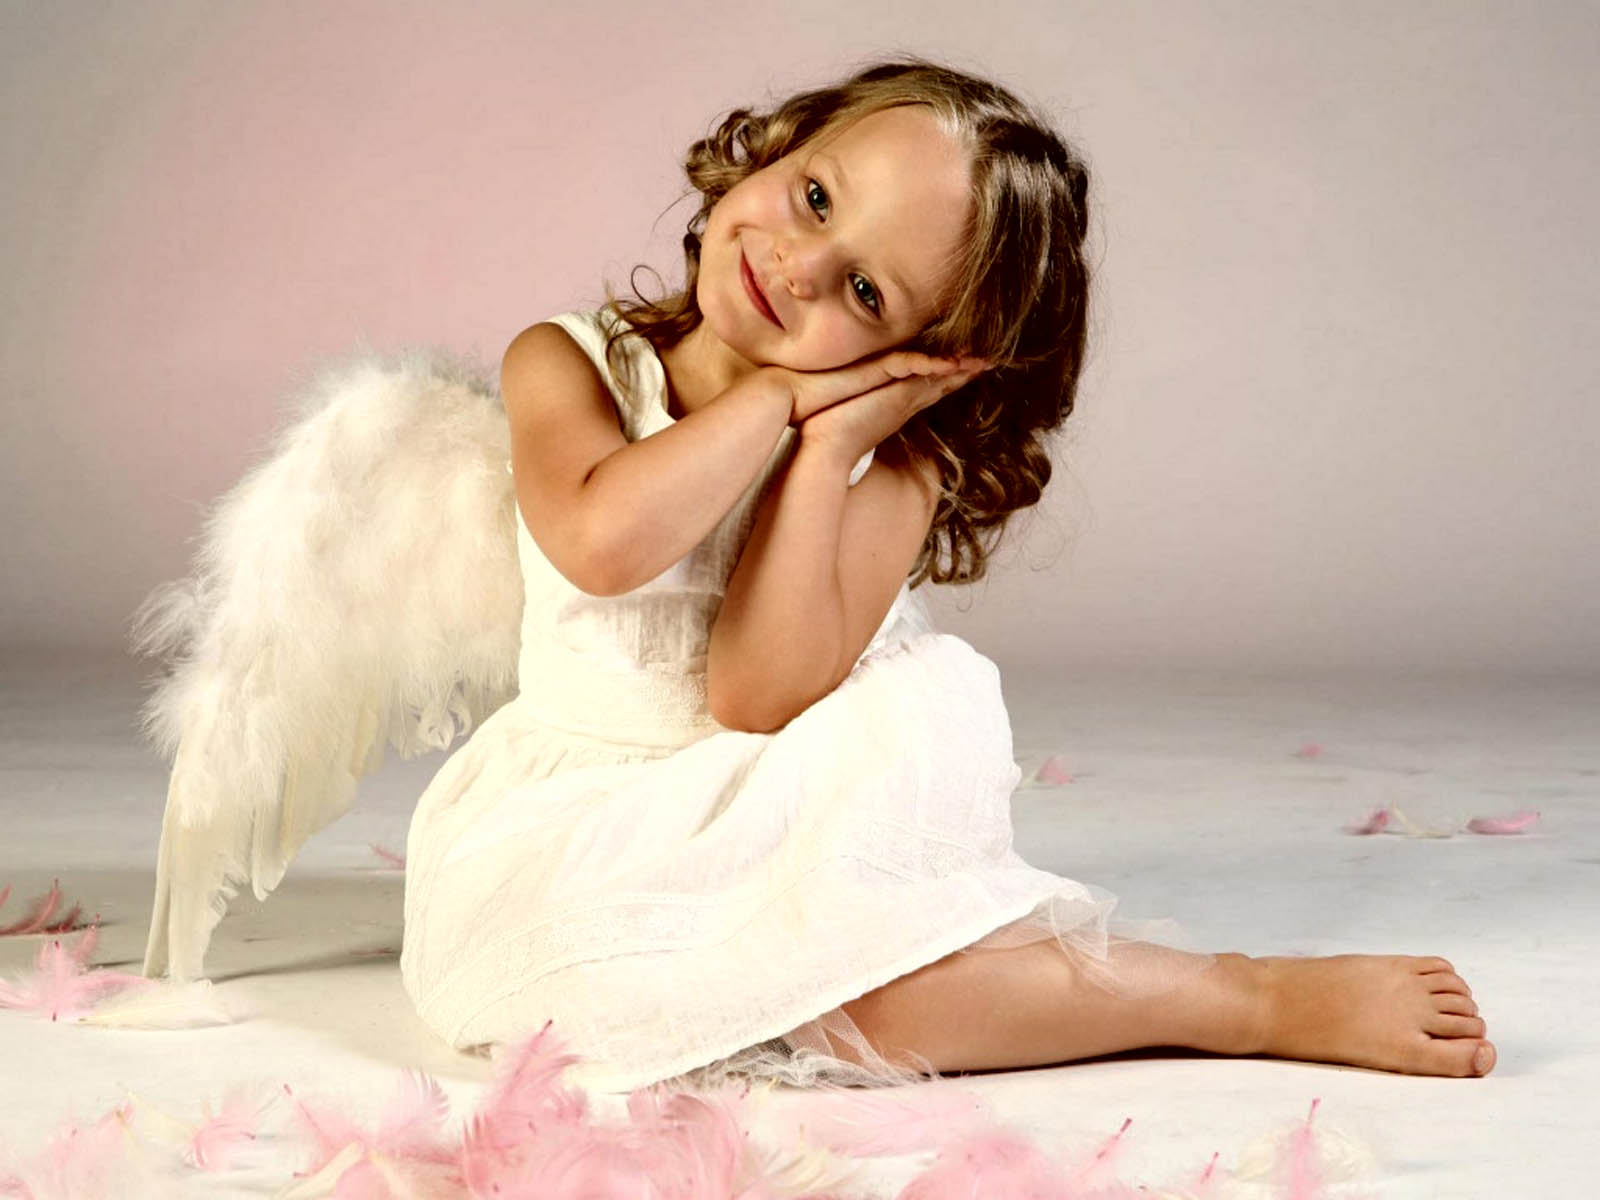 Cute little angel pictures Little Angel Stock Photos. Royalty Free Little Angel Images